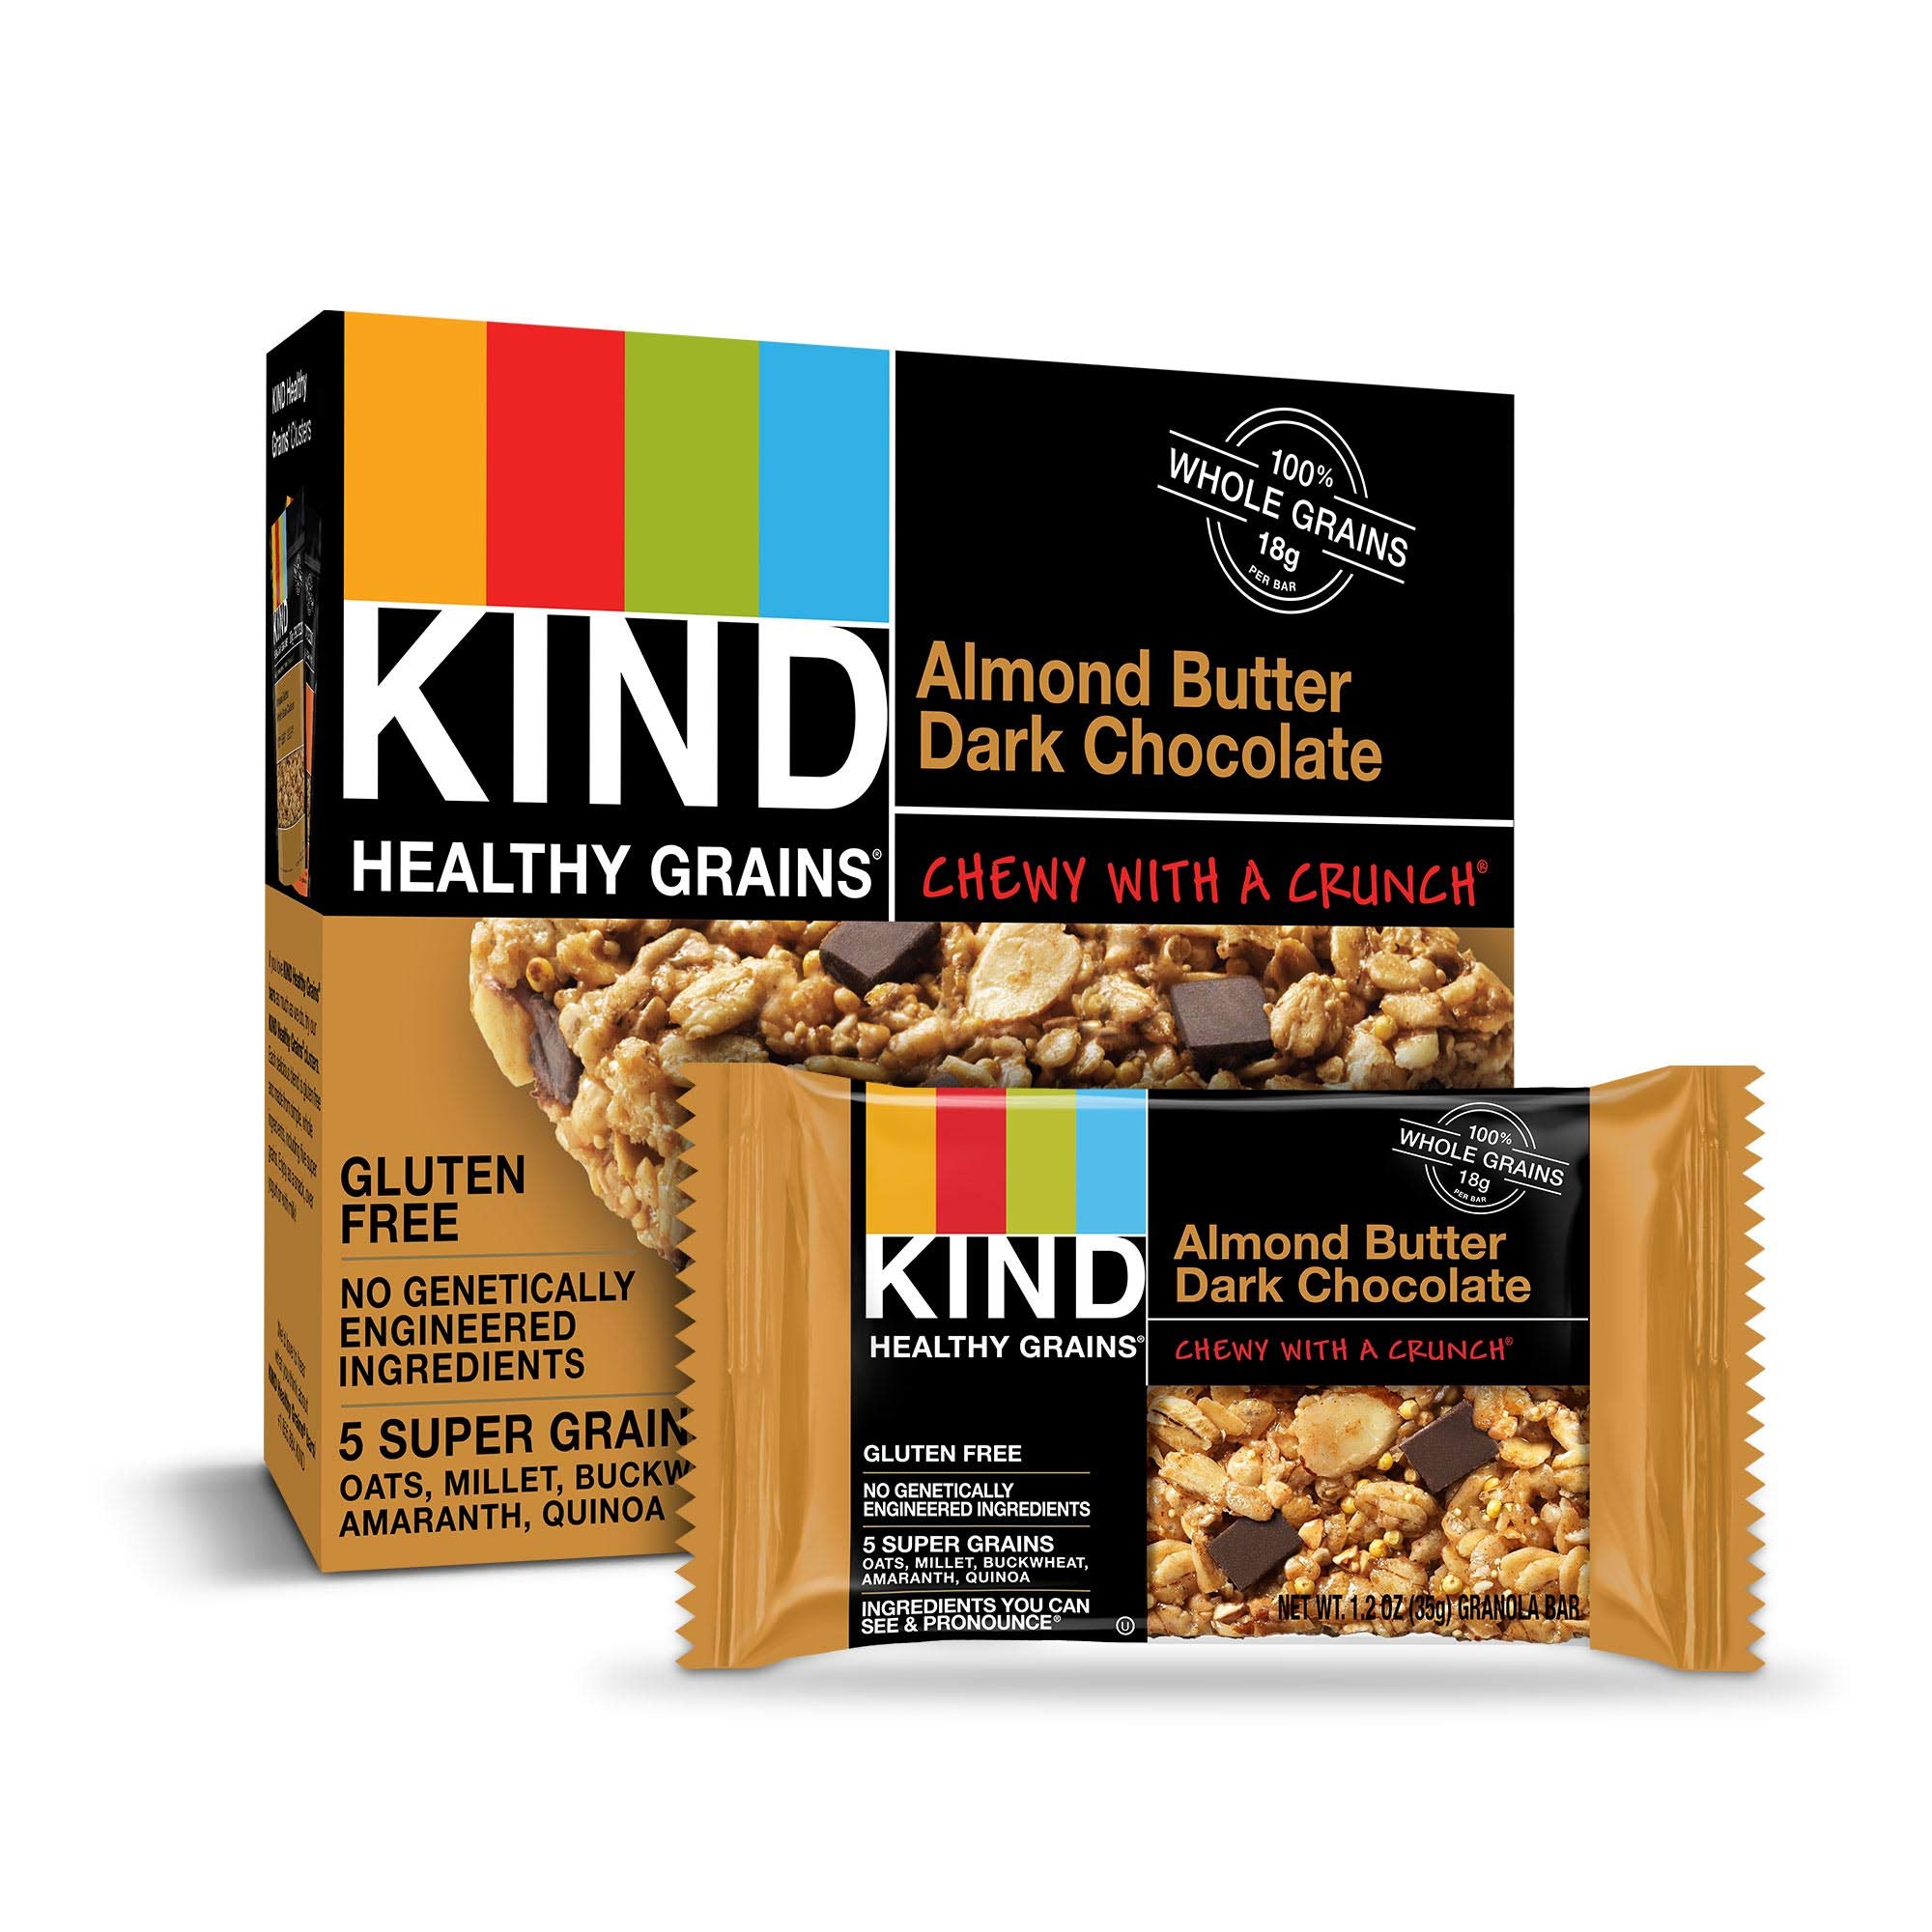 KIND Healthy Grains Granola Bars, Almond Butter Dark Chocolate, Gluten Free, 1.2 Ounce (Pack of 40) by KIND